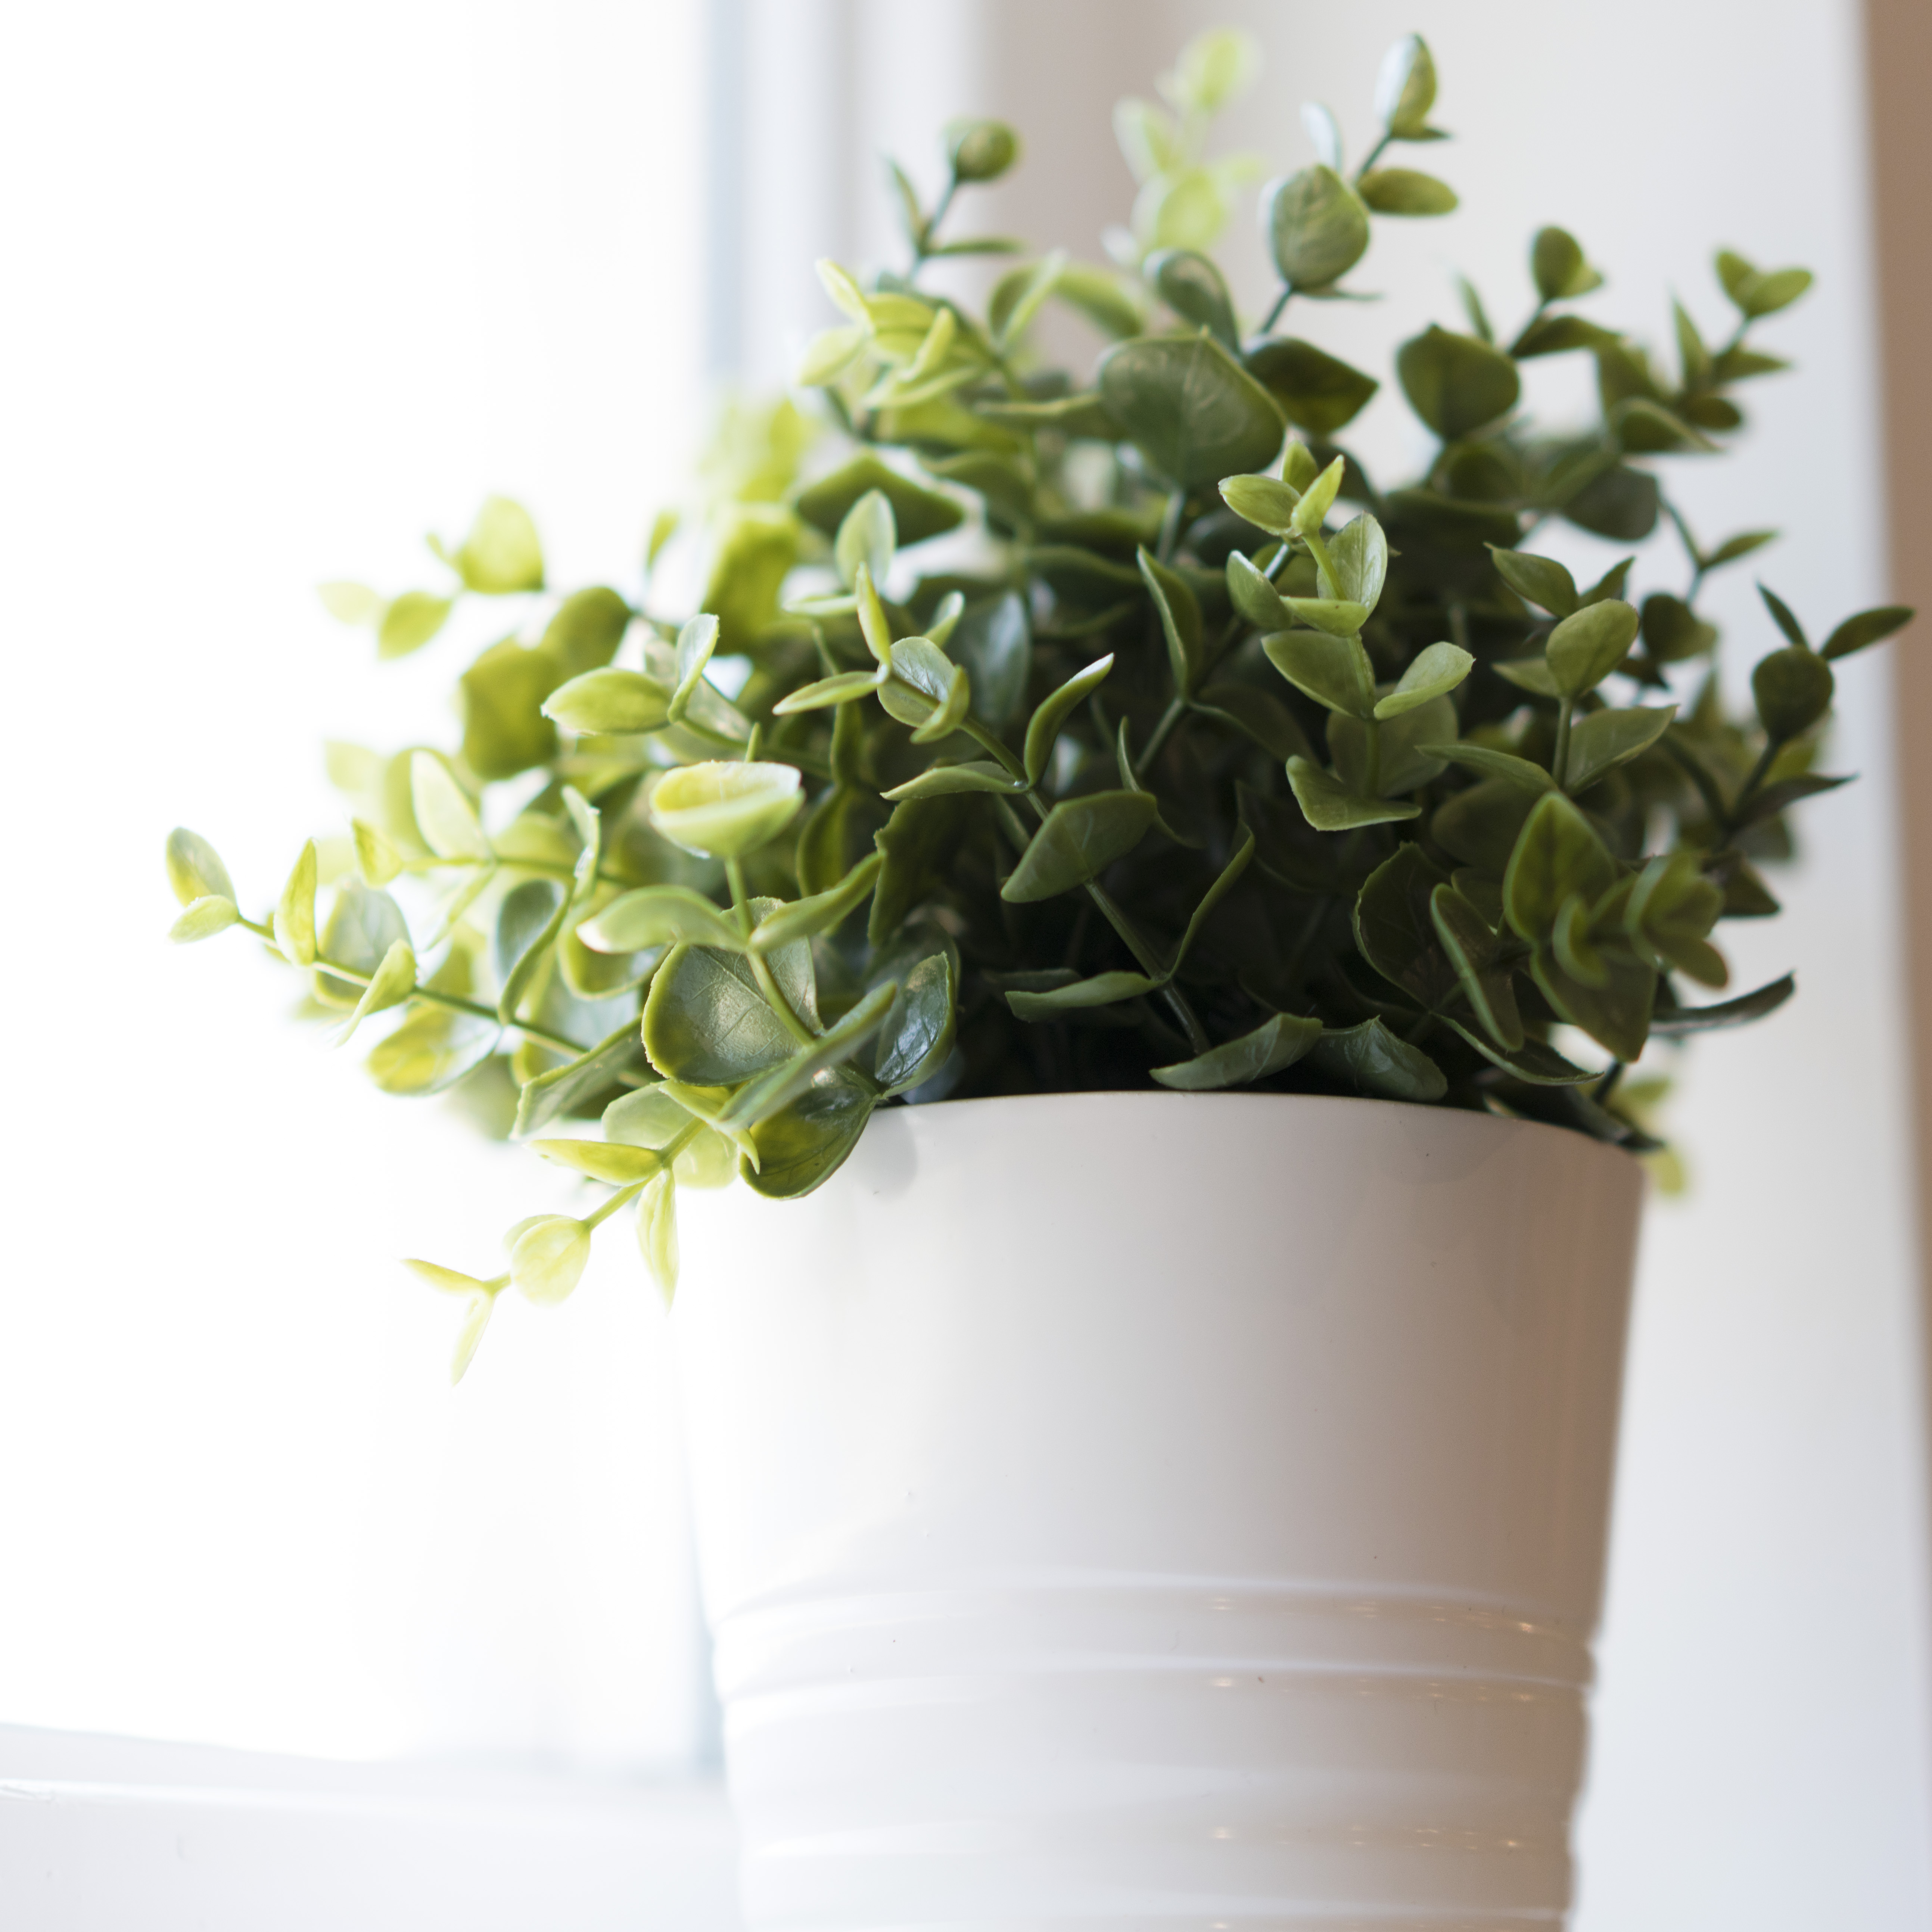 Plant in a pot near a window